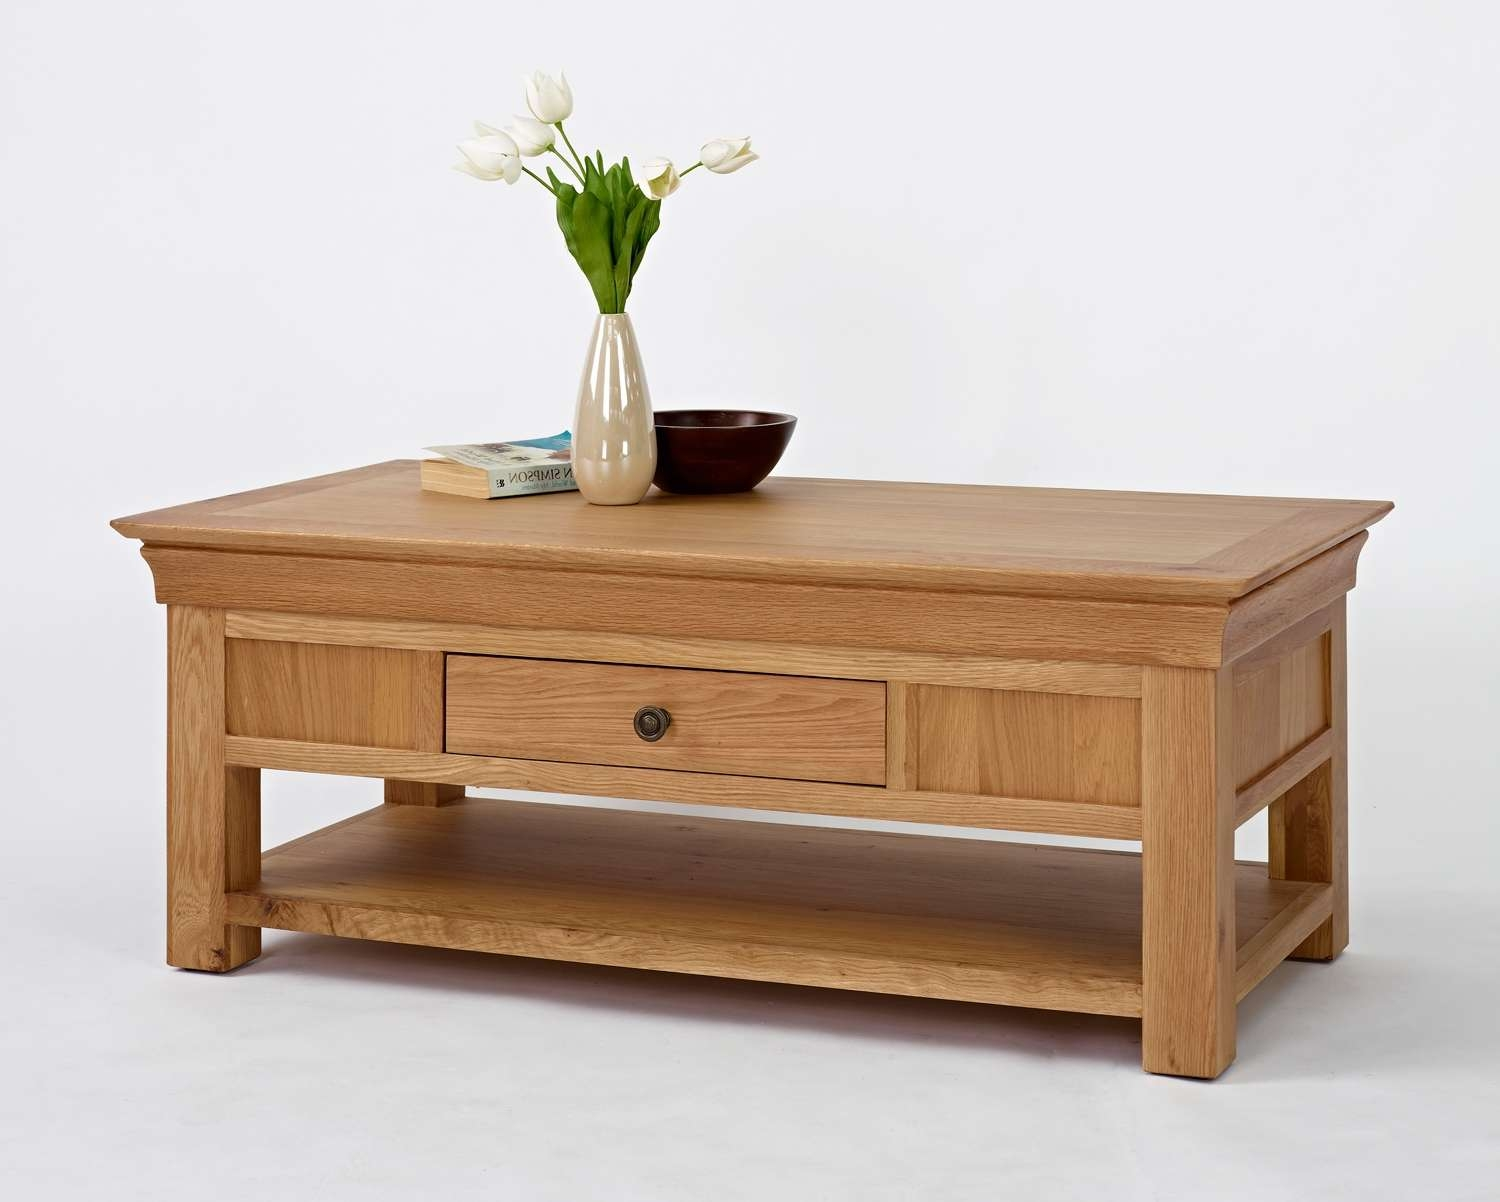 Simple Steps To Pick Oak Coffee Table – Bestartisticinteriors Throughout Well Known Oak Coffee Tables With Shelf (View 19 of 20)